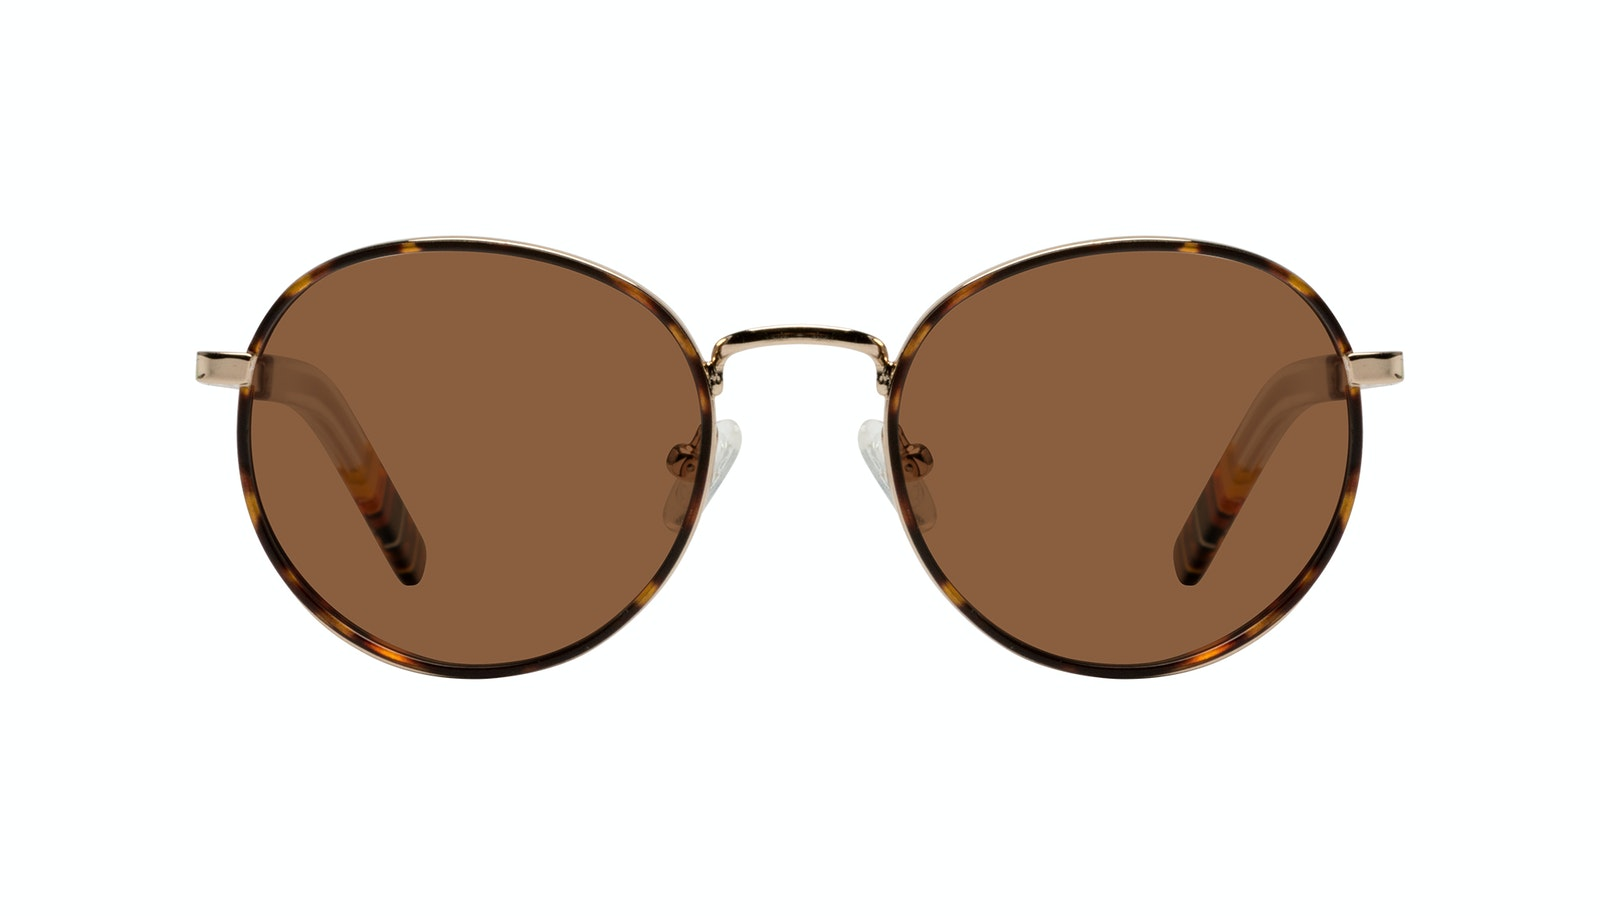 Affordable Fashion Glasses Round Sunglasses Men Reach Tortoise